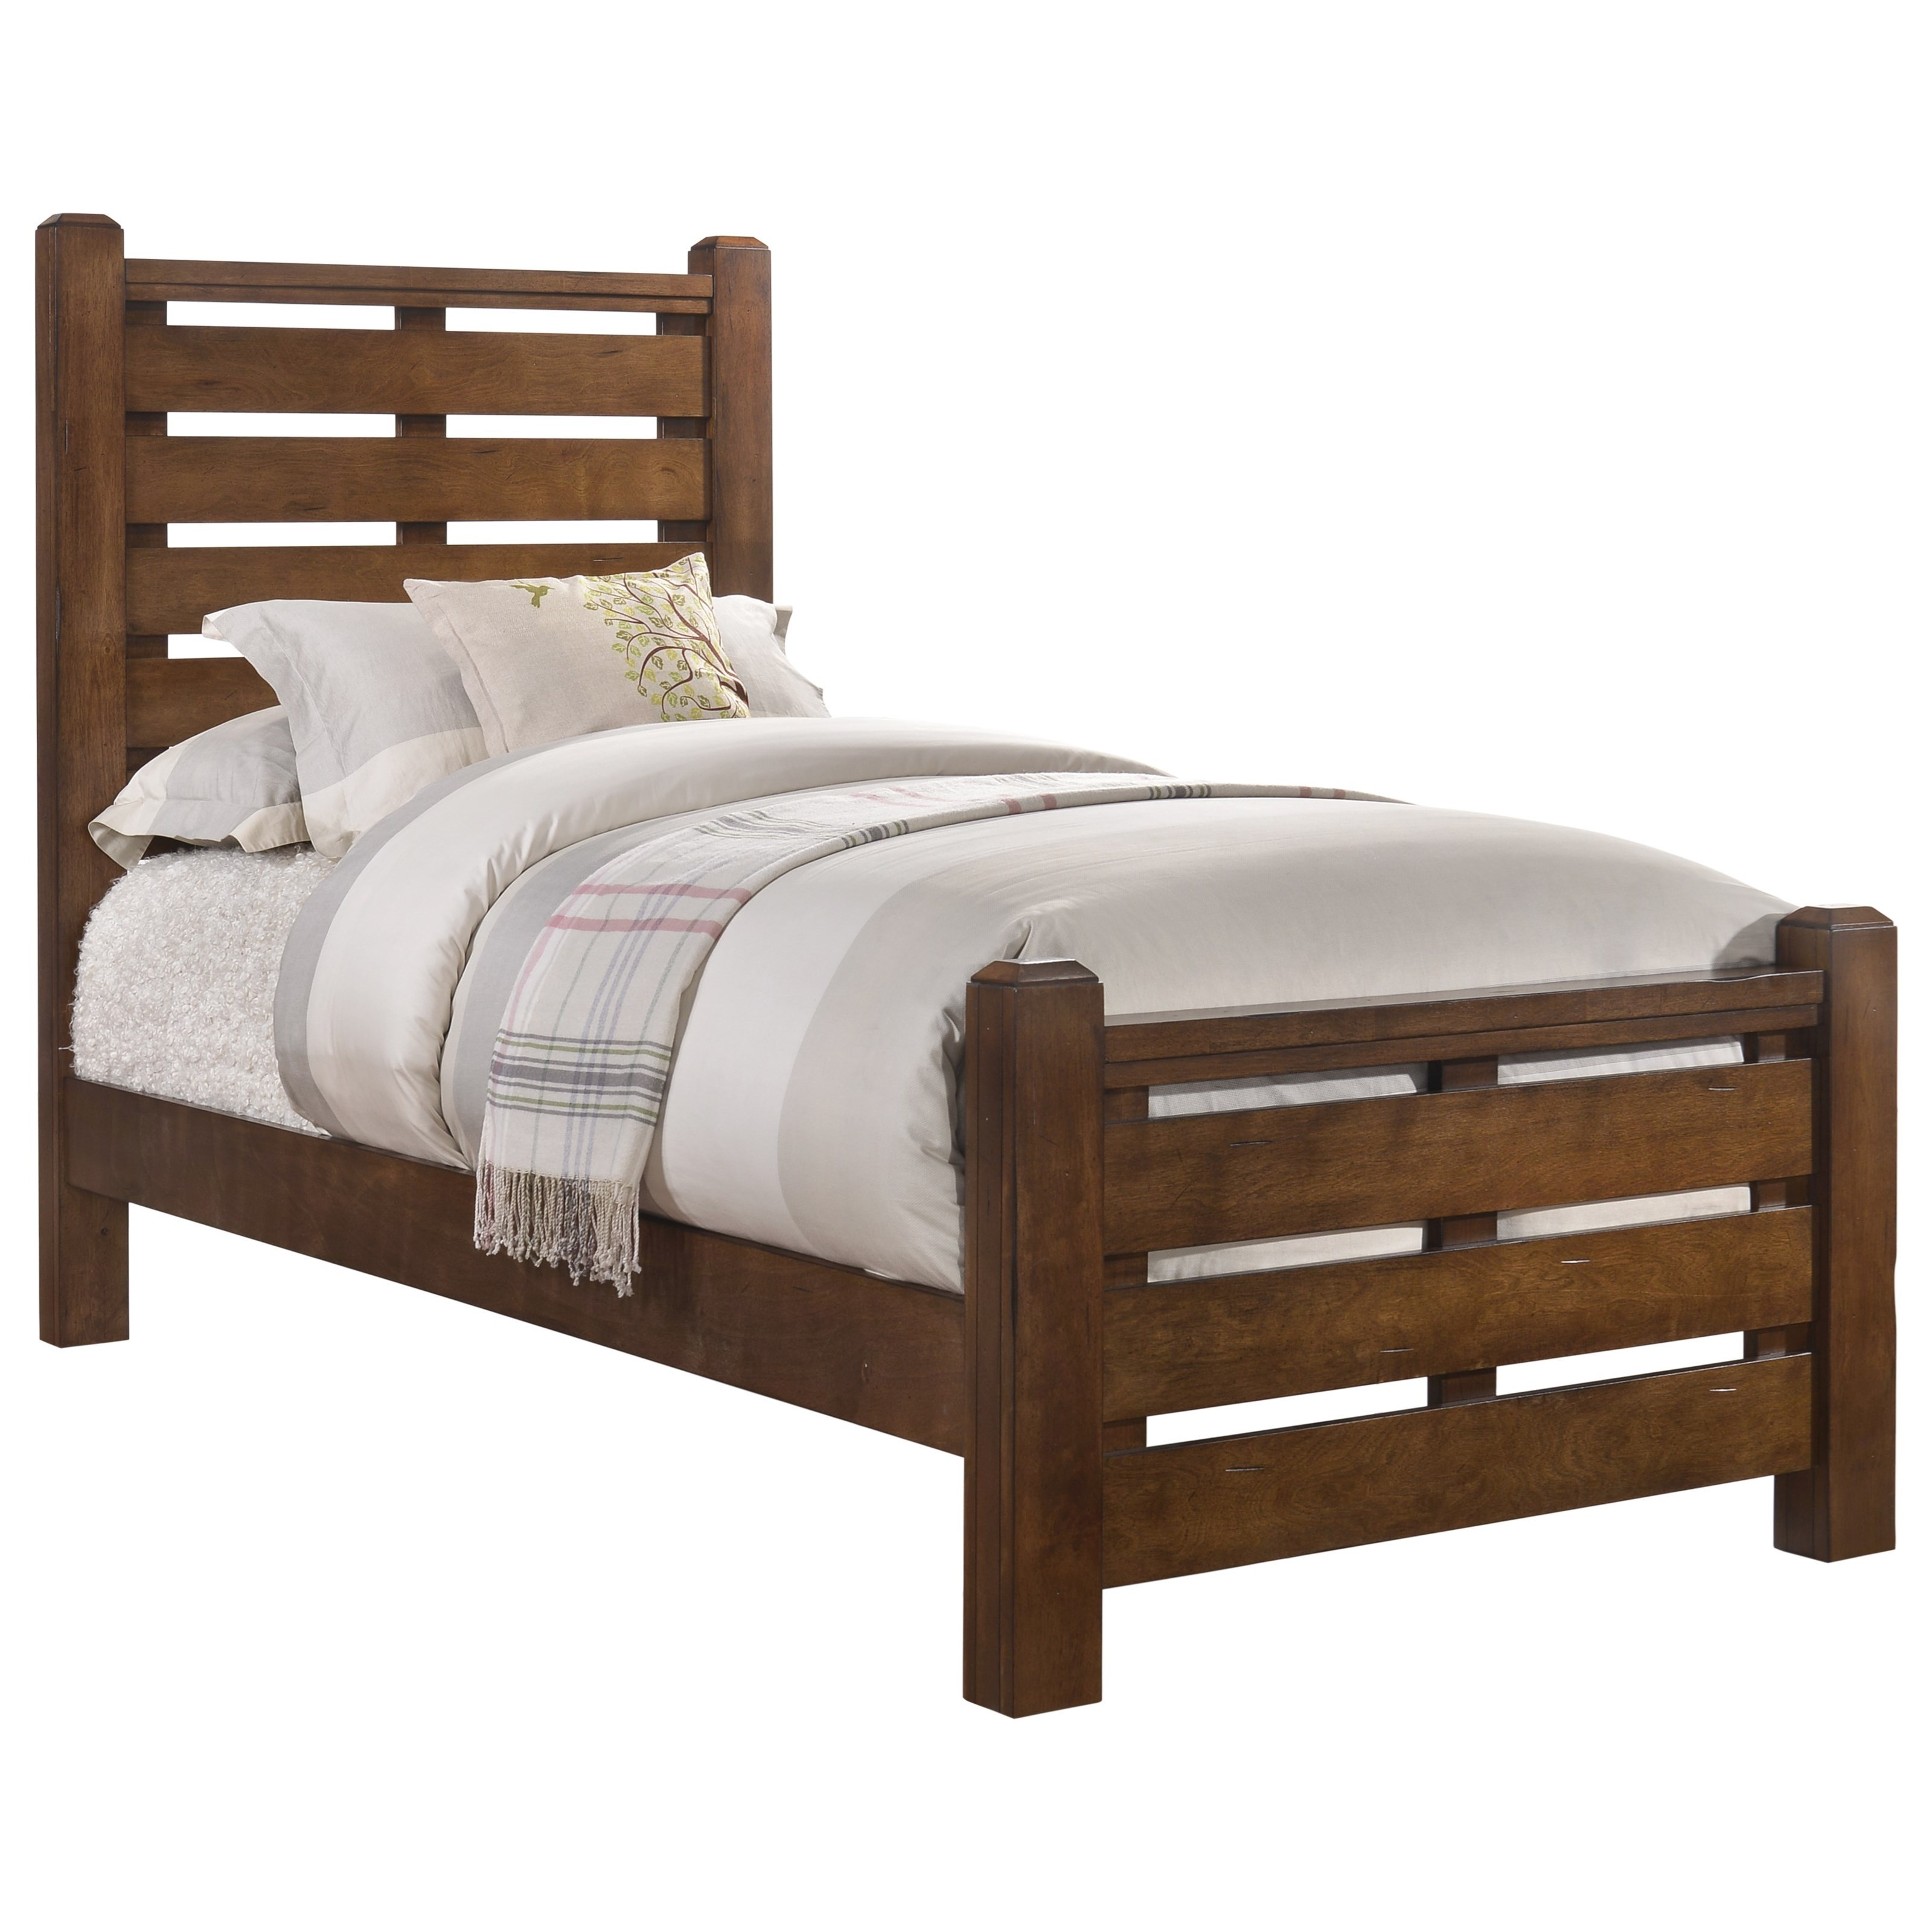 1022 Logan Twin Bed by Lane at Powell's Furniture and Mattress